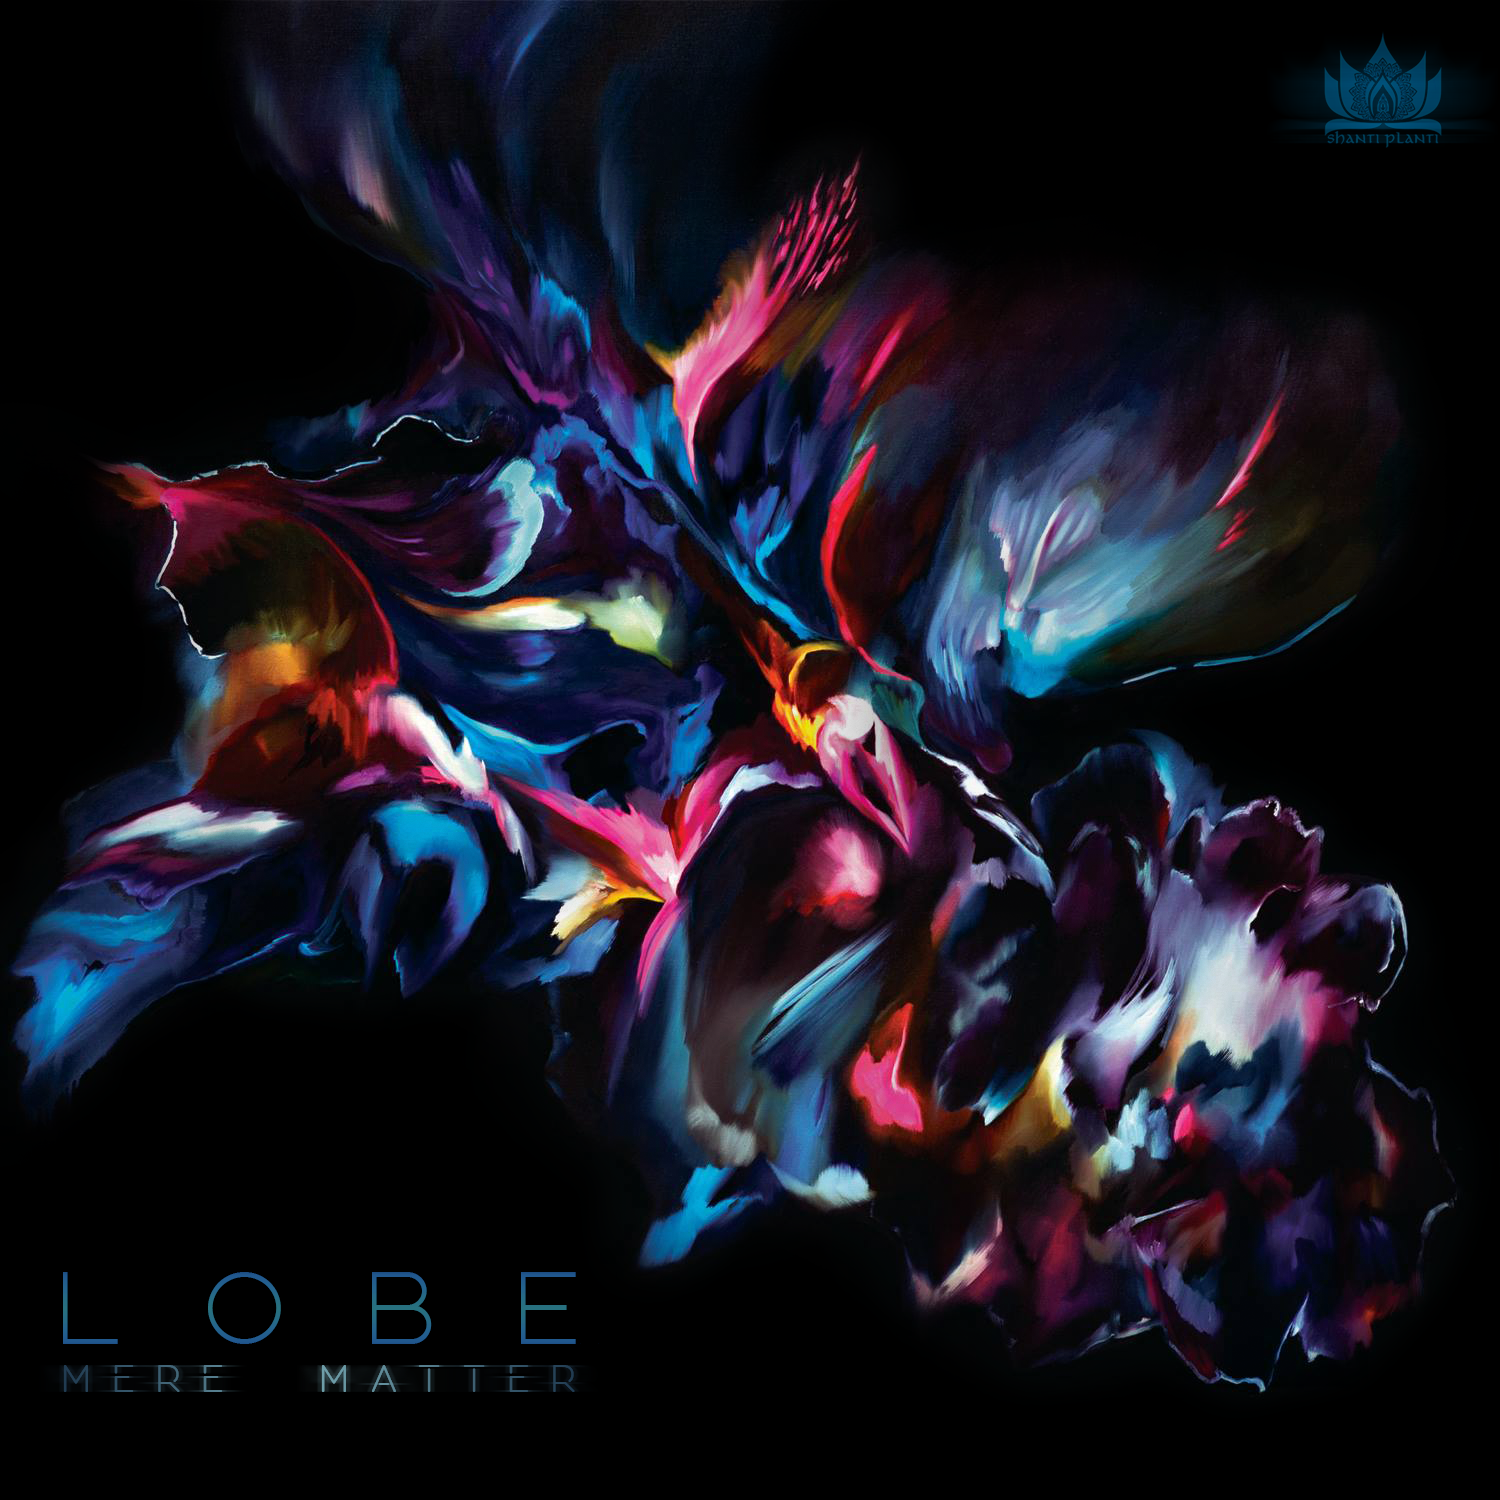 - Lobe is a collaboration between Melbourne based brothers Cody and Jesse Norris,their artful and organic Psy dub sound is a favourite of mine and so i was very pleased when asked to do their album cover art for their debut Ep-Mere matter. I used a painting from 2014 titled Ikaro para conexion.Find their gorgeous music on the link below